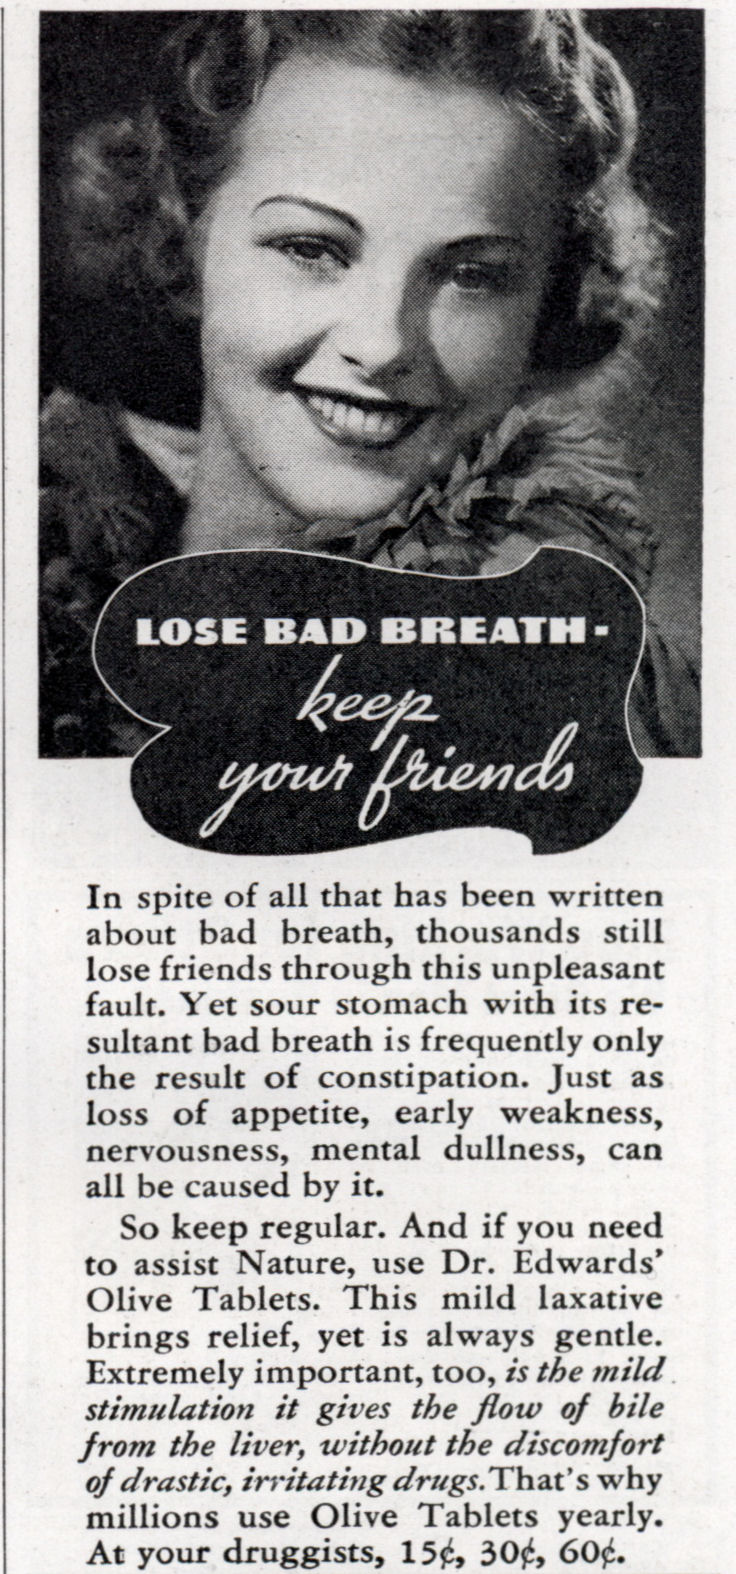 LOSE BAD BREATH – Keep Your Friends (Dec, 1937)